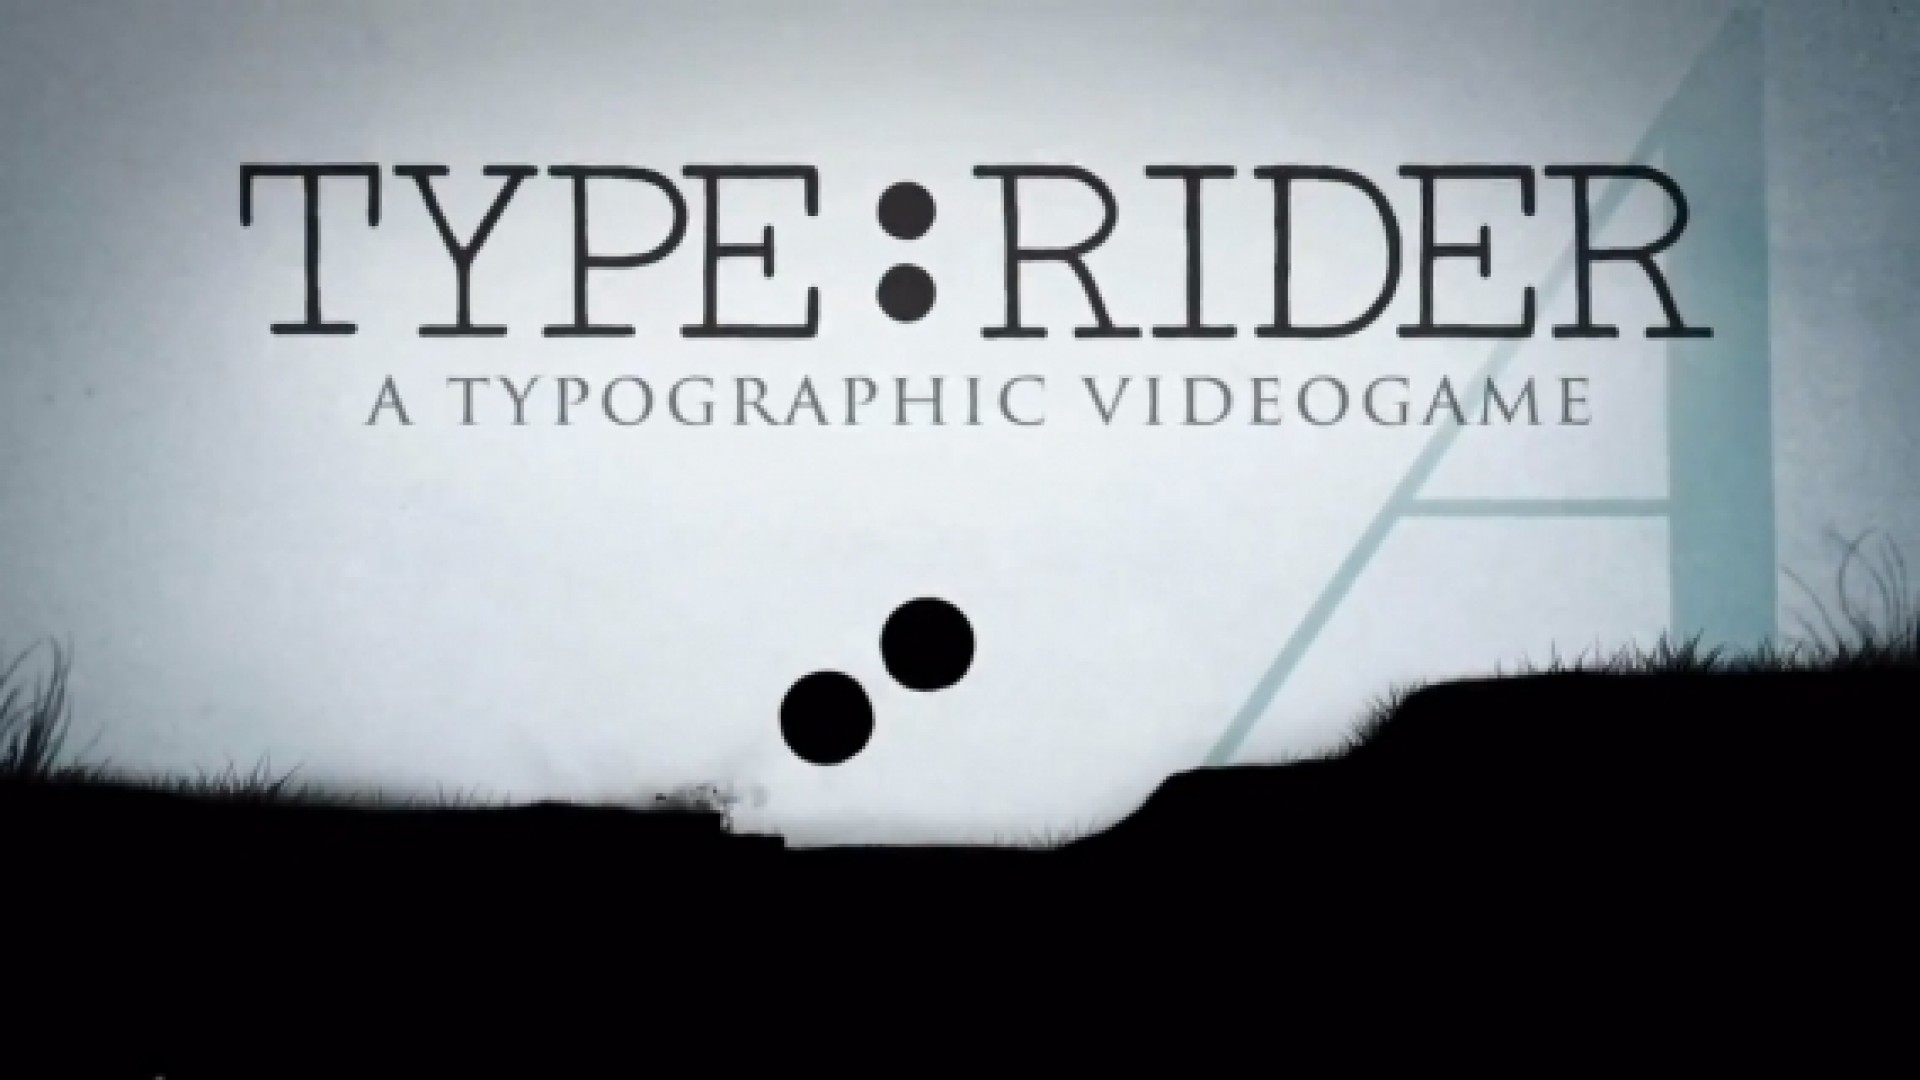 An Afternoon with Type: Rider